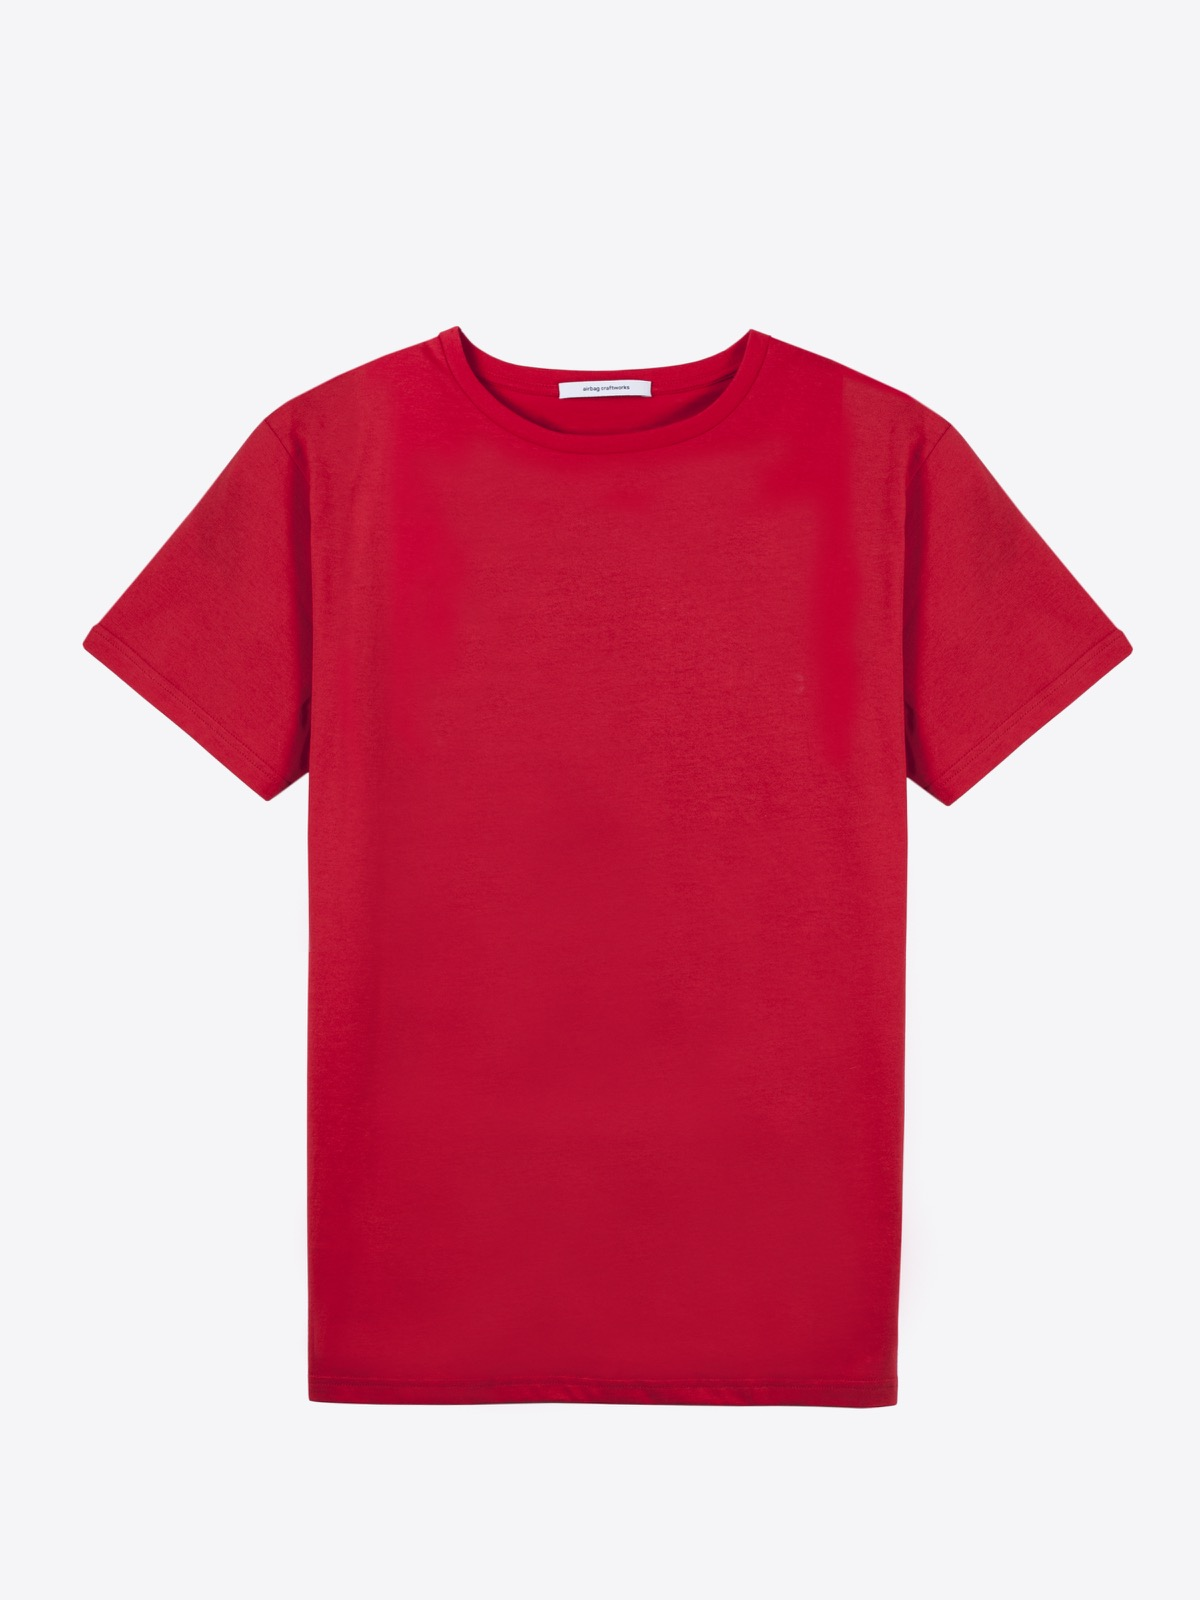 airbag craftworks t 01 blank | red